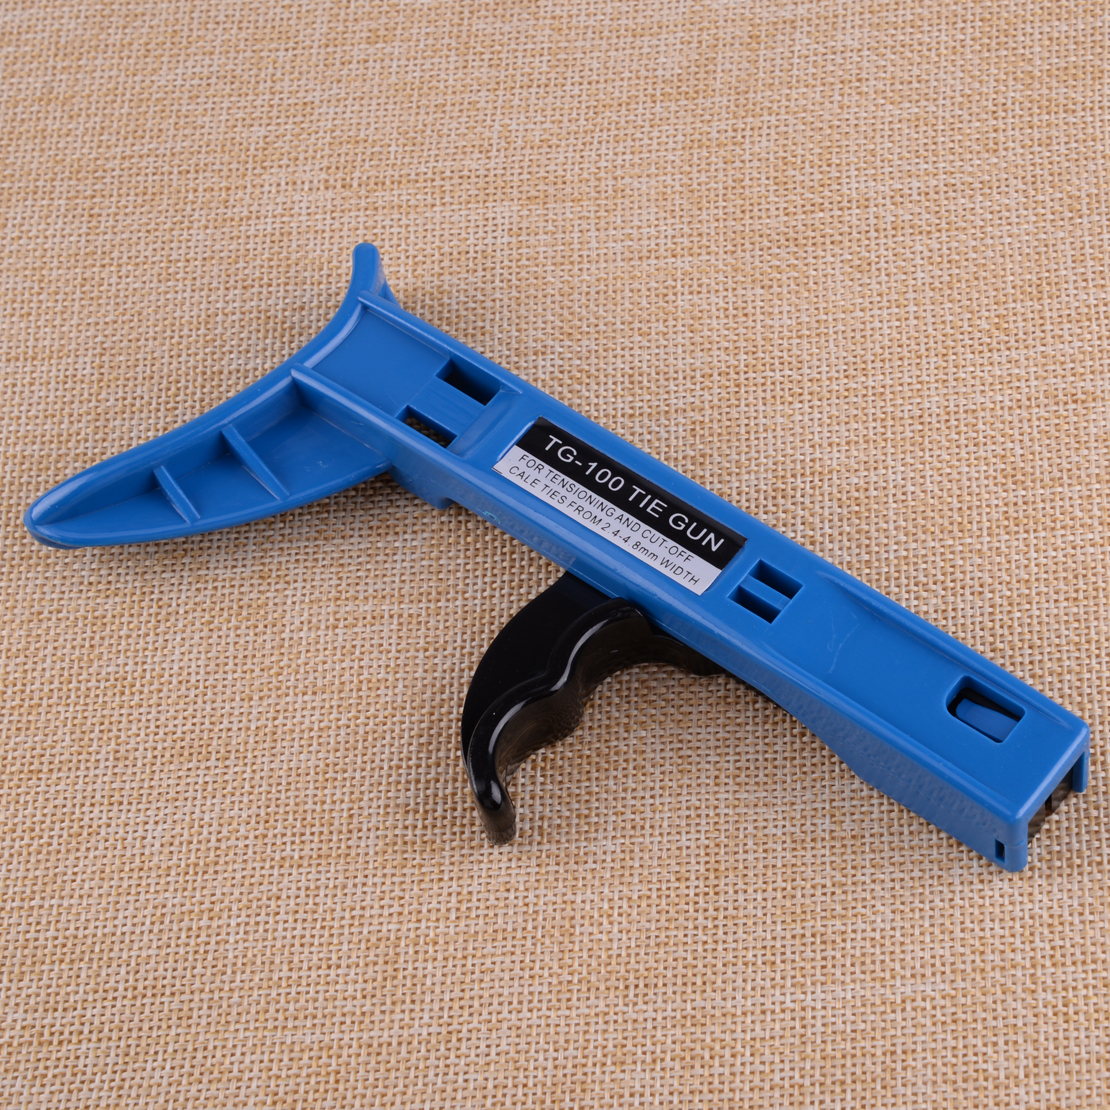 Auto Cable Ties Tensioner// Cutter For Tensioin /& Cut-Off Nylon Cable Ties